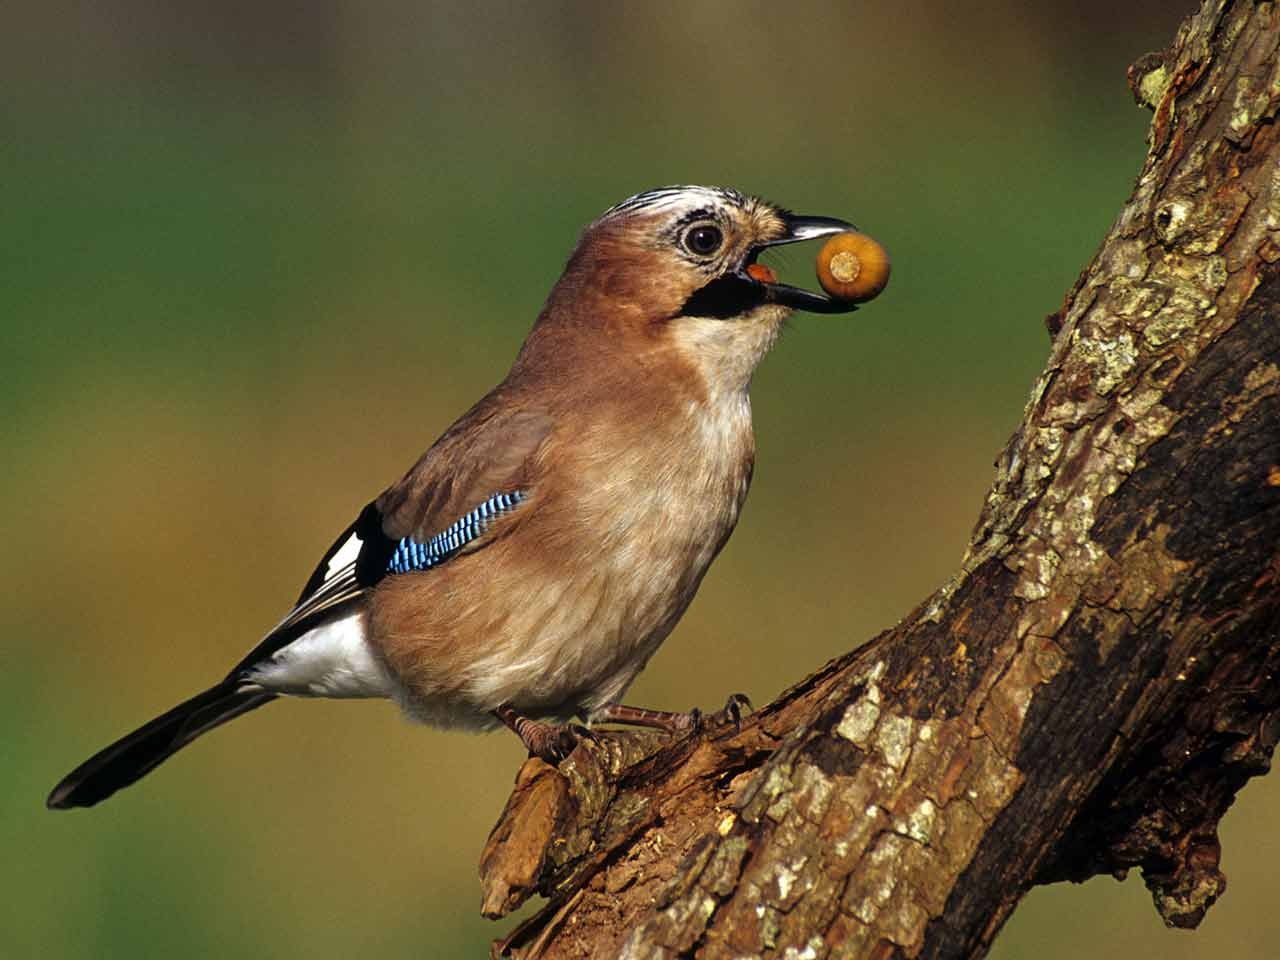 Jay collecting acorns